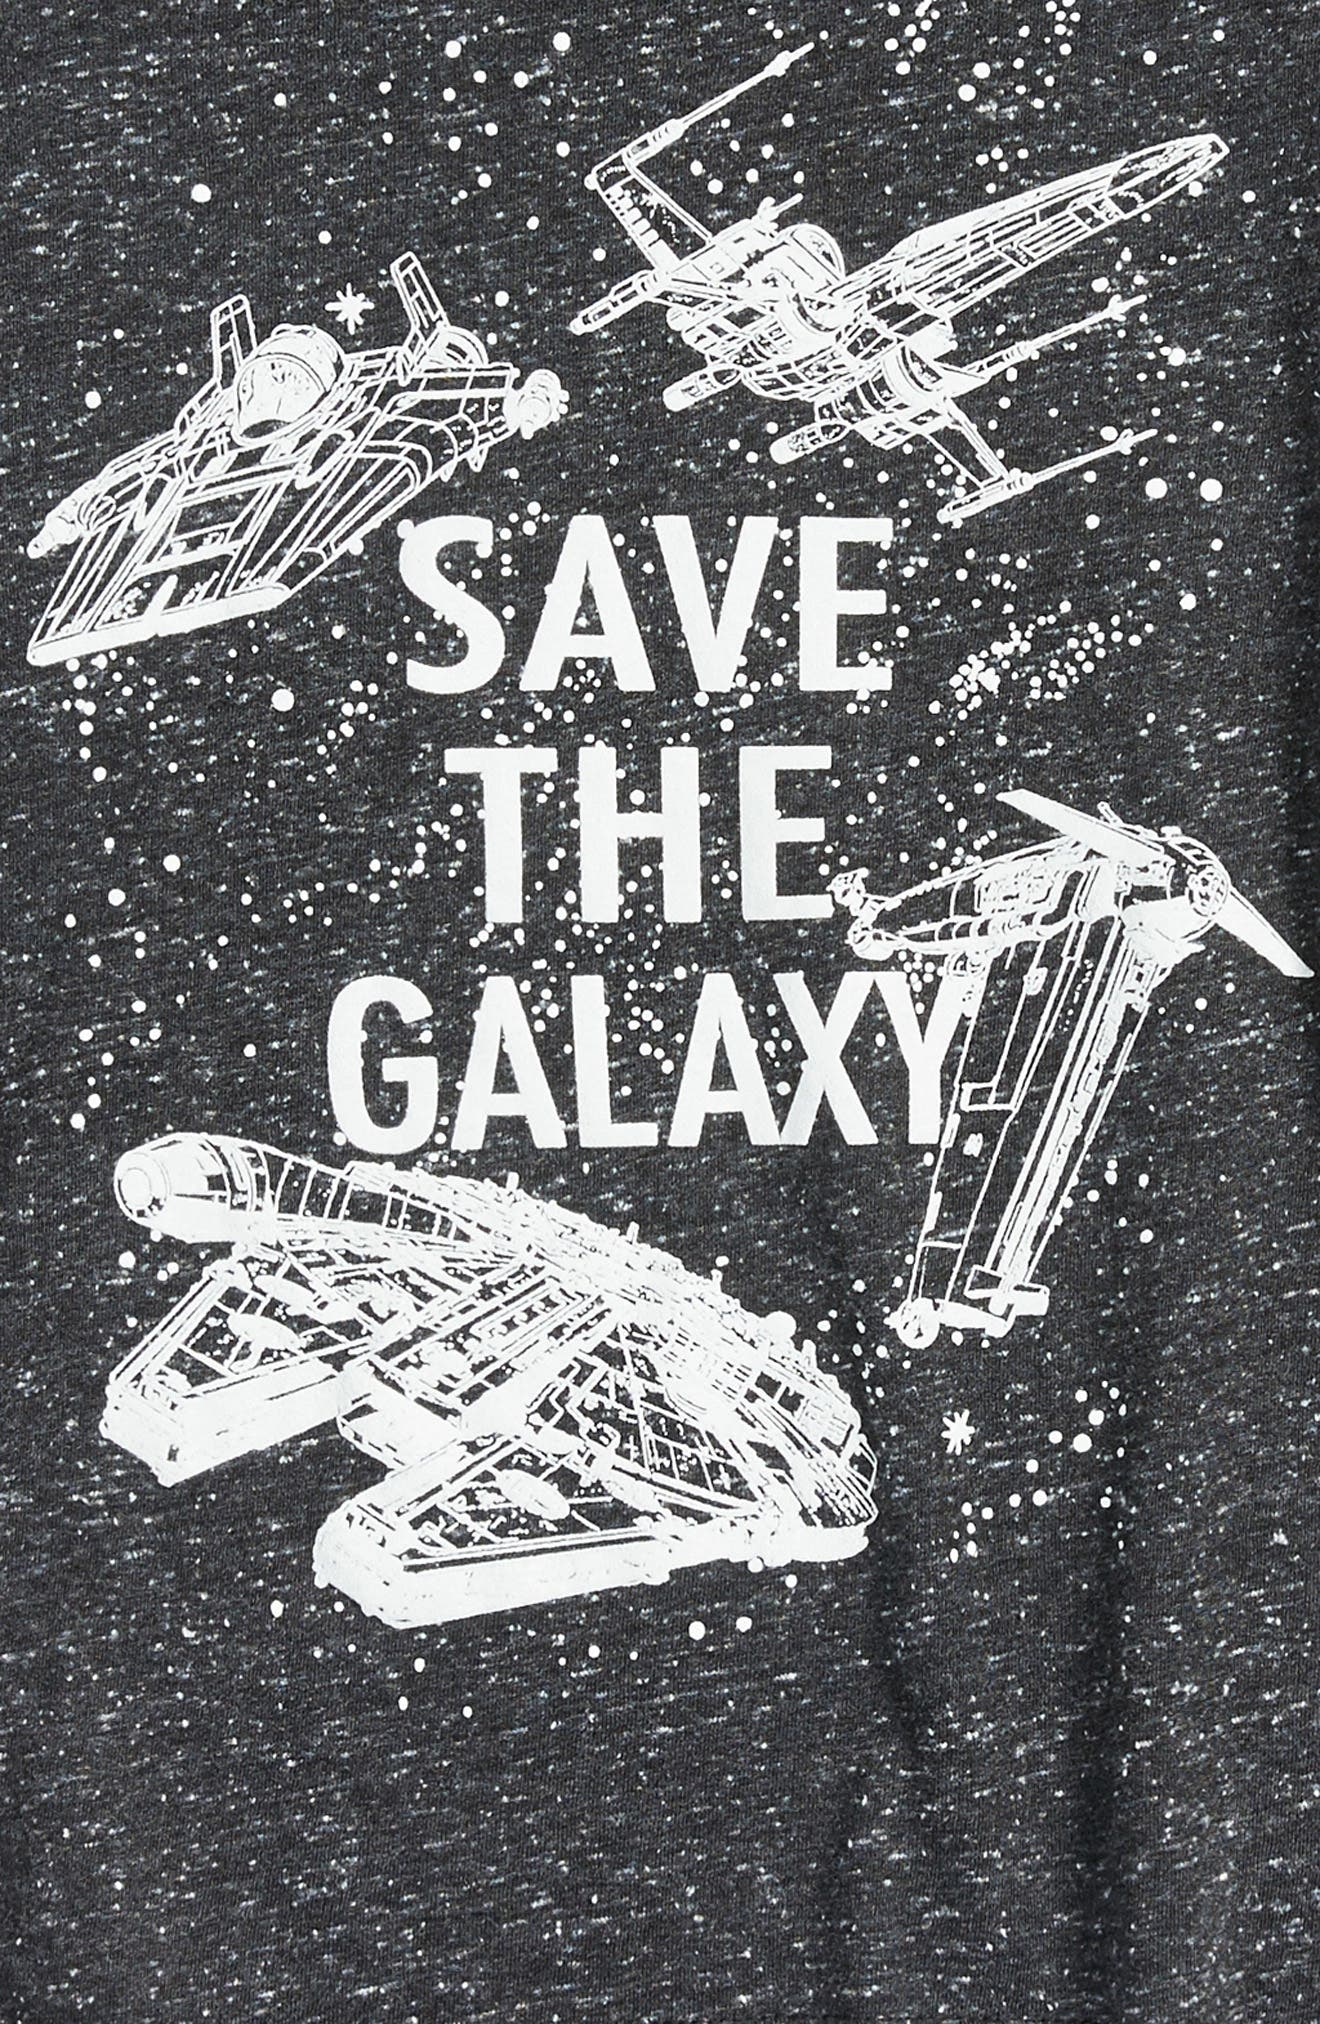 Alternate Image 2  - Jem Star Wars™ - Save the Galaxy Glow in the Dark T-Shirt (Toddler Boys & Little Boys)